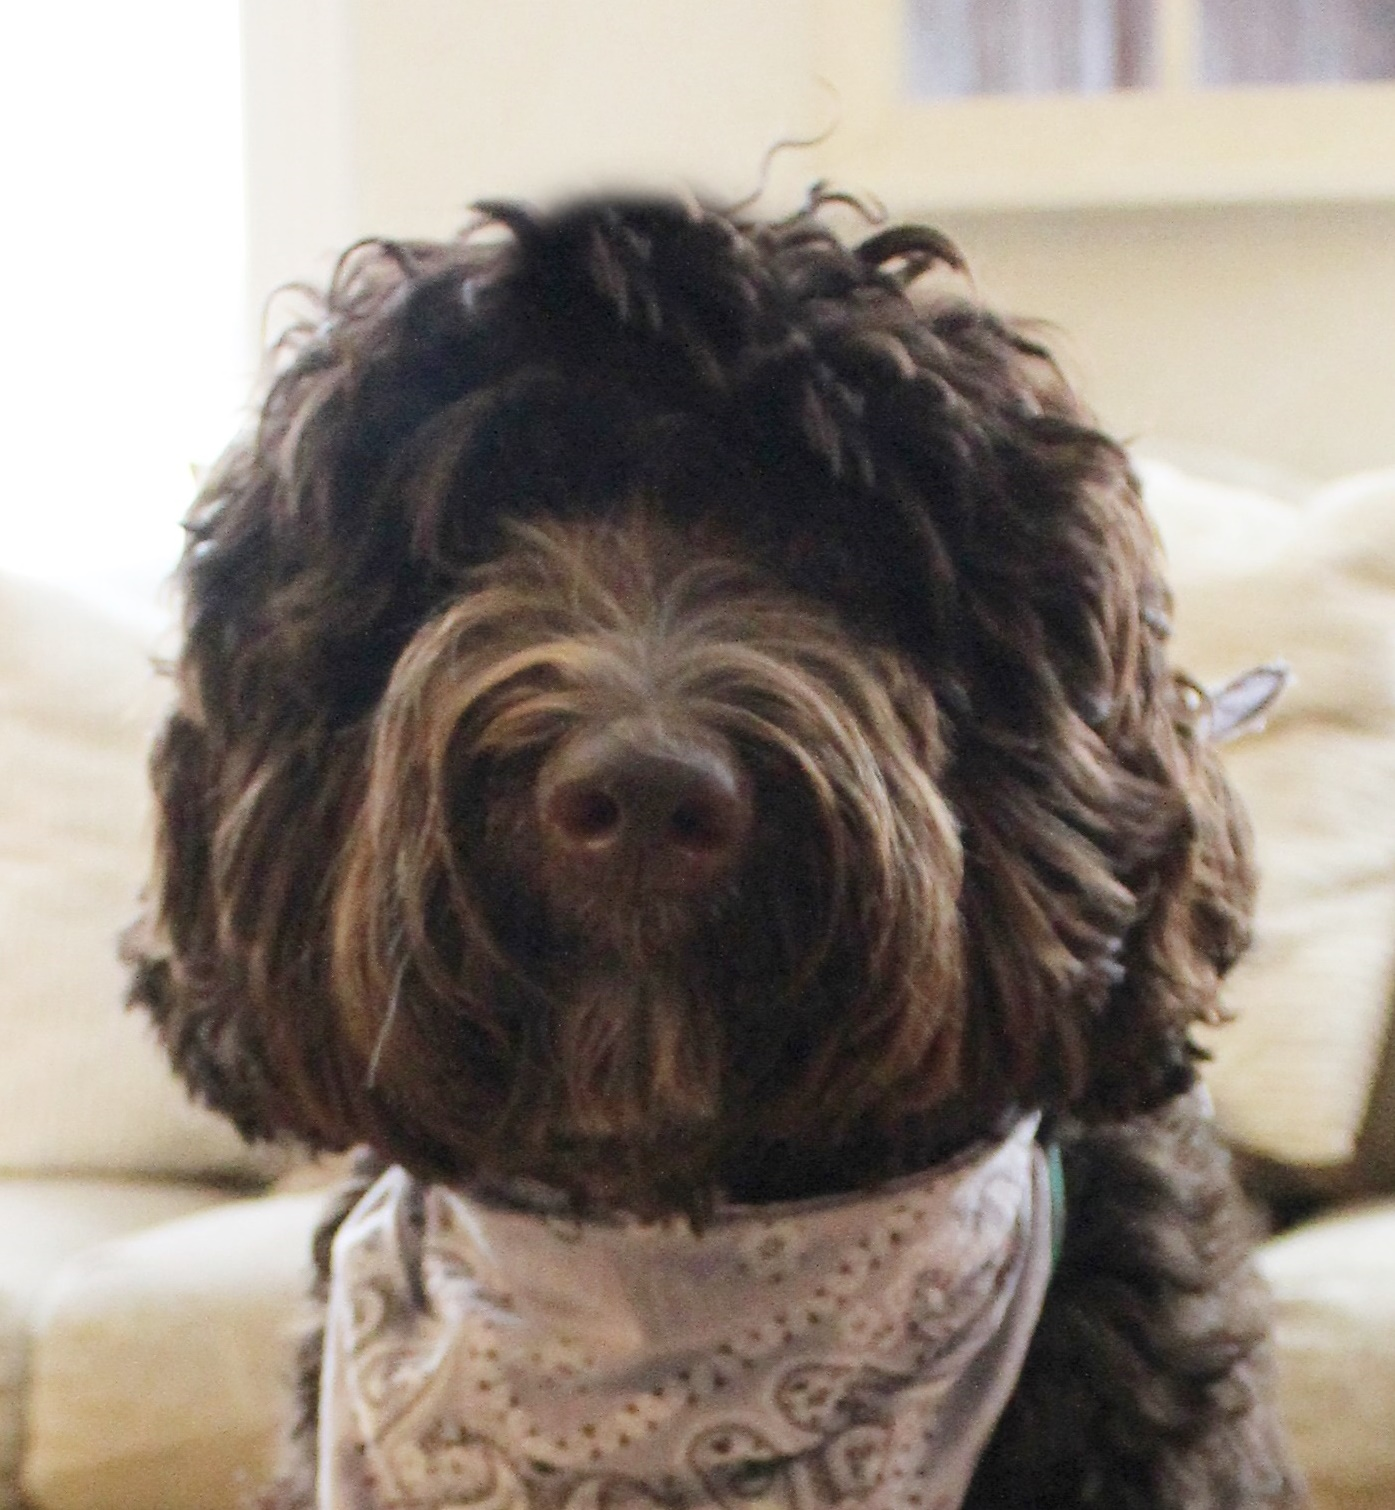 Lizzy, our largest and chocolatiest Doodle!